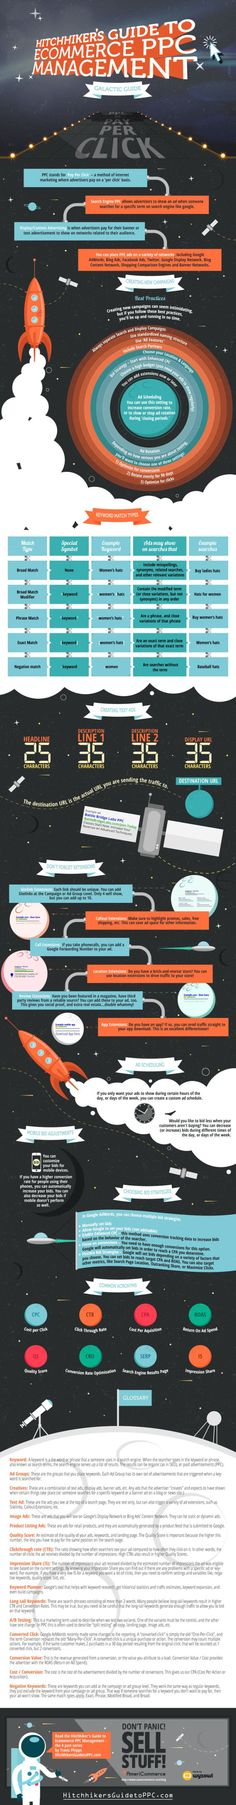 Plan A Link - Hitchhikers Guide to Ecommerce PPC Management http://www.intelisystems.com